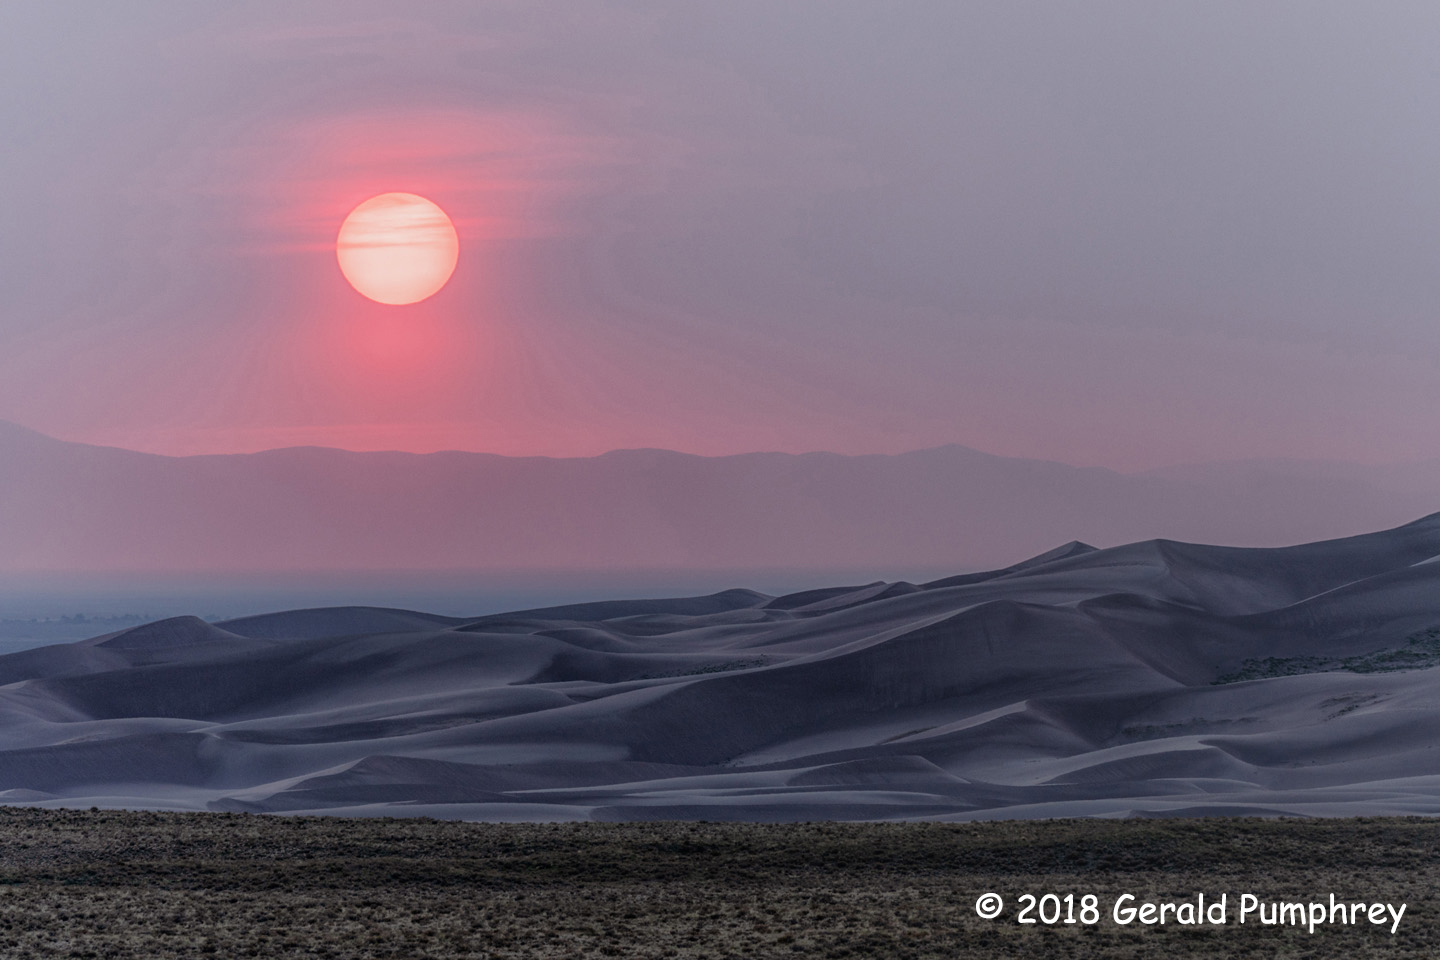 2nd Place Scenic - Great Sandunes Sunset by Gerald Pumphrey